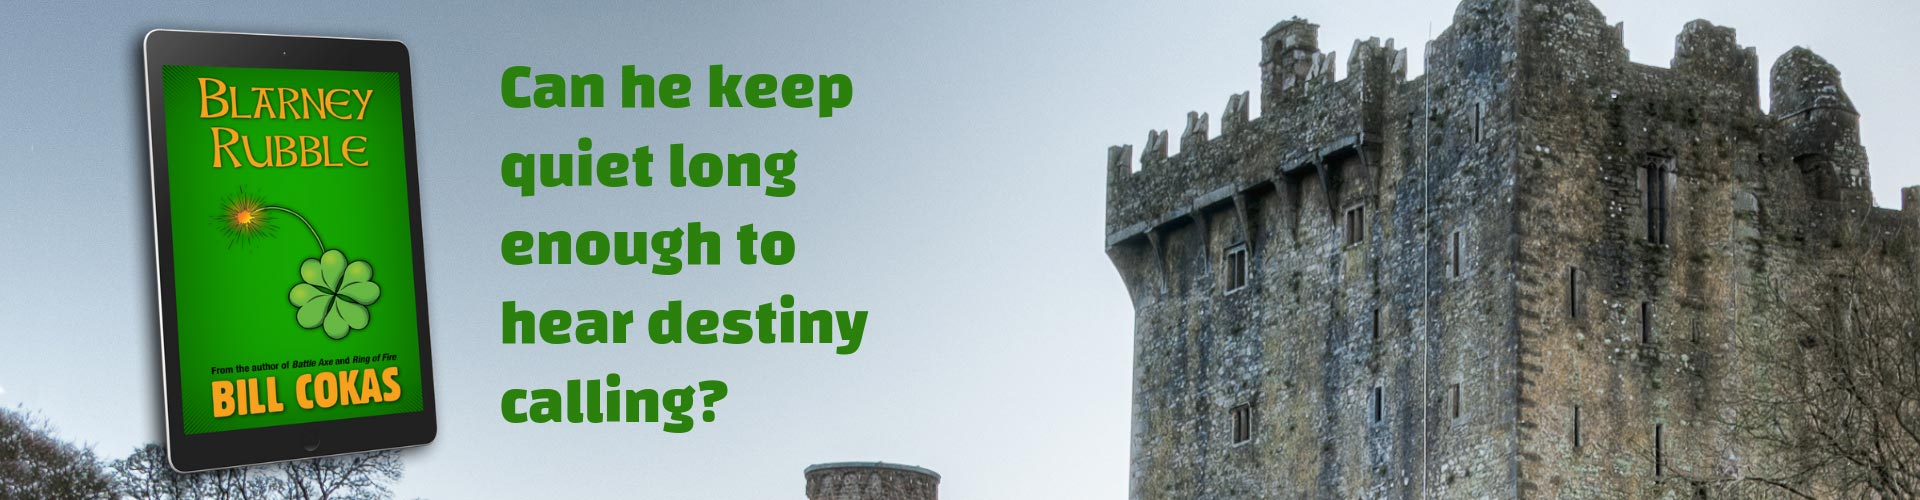 V2-Can-he-keep-quiet-long-enough-to-hear-destiny-calling